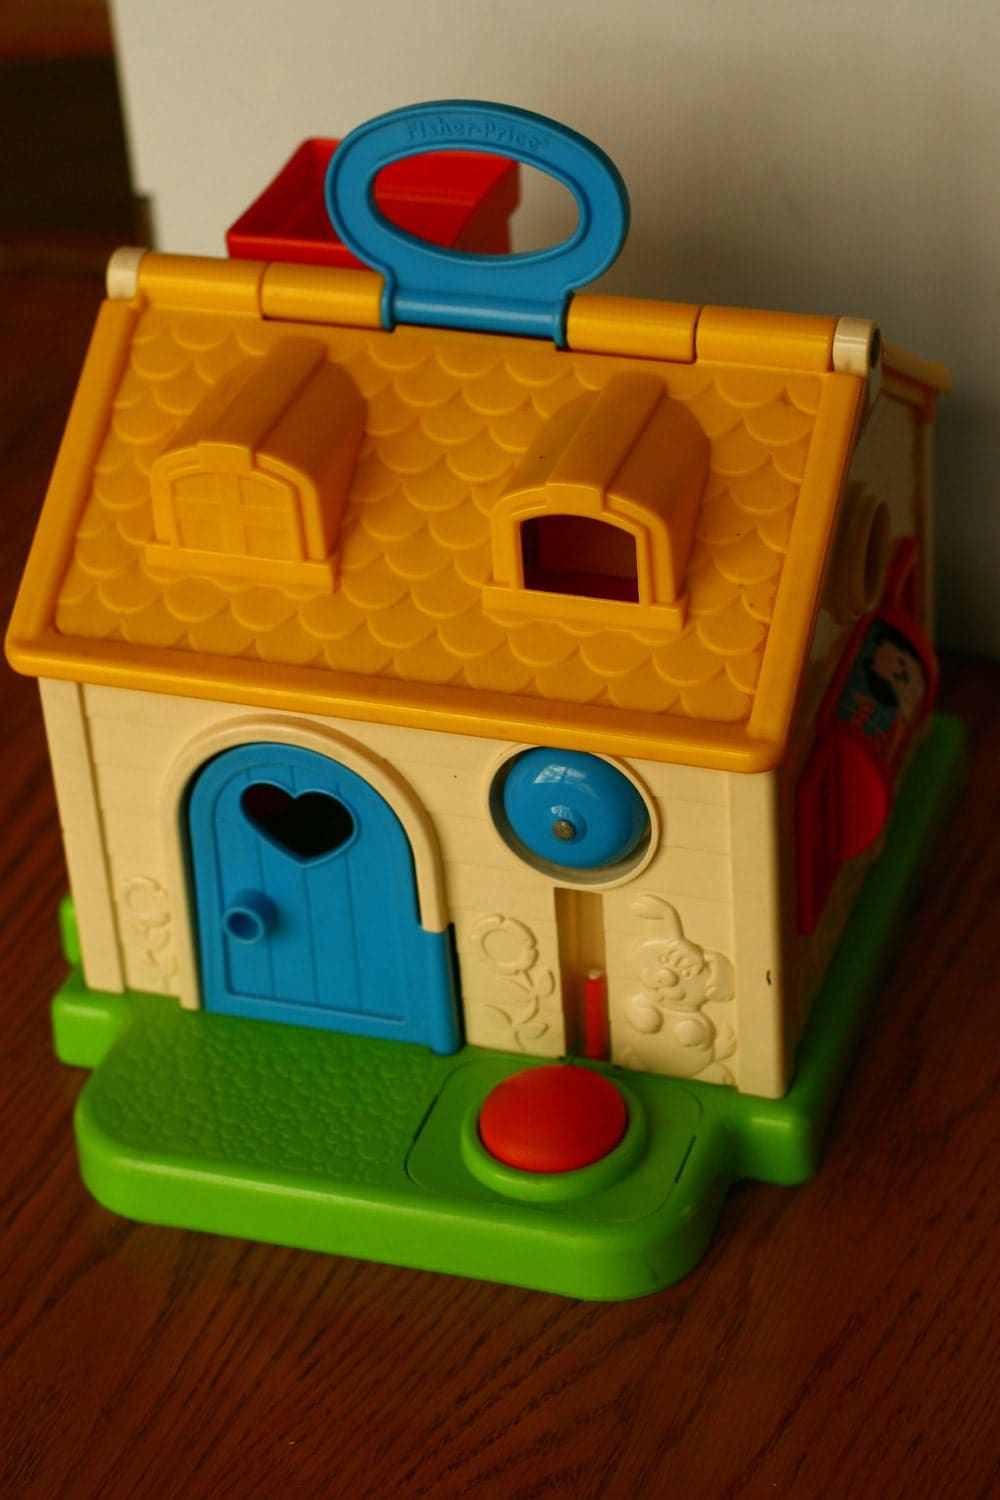 1984 Toys For Girls : Off sale vintage fisher price toy by